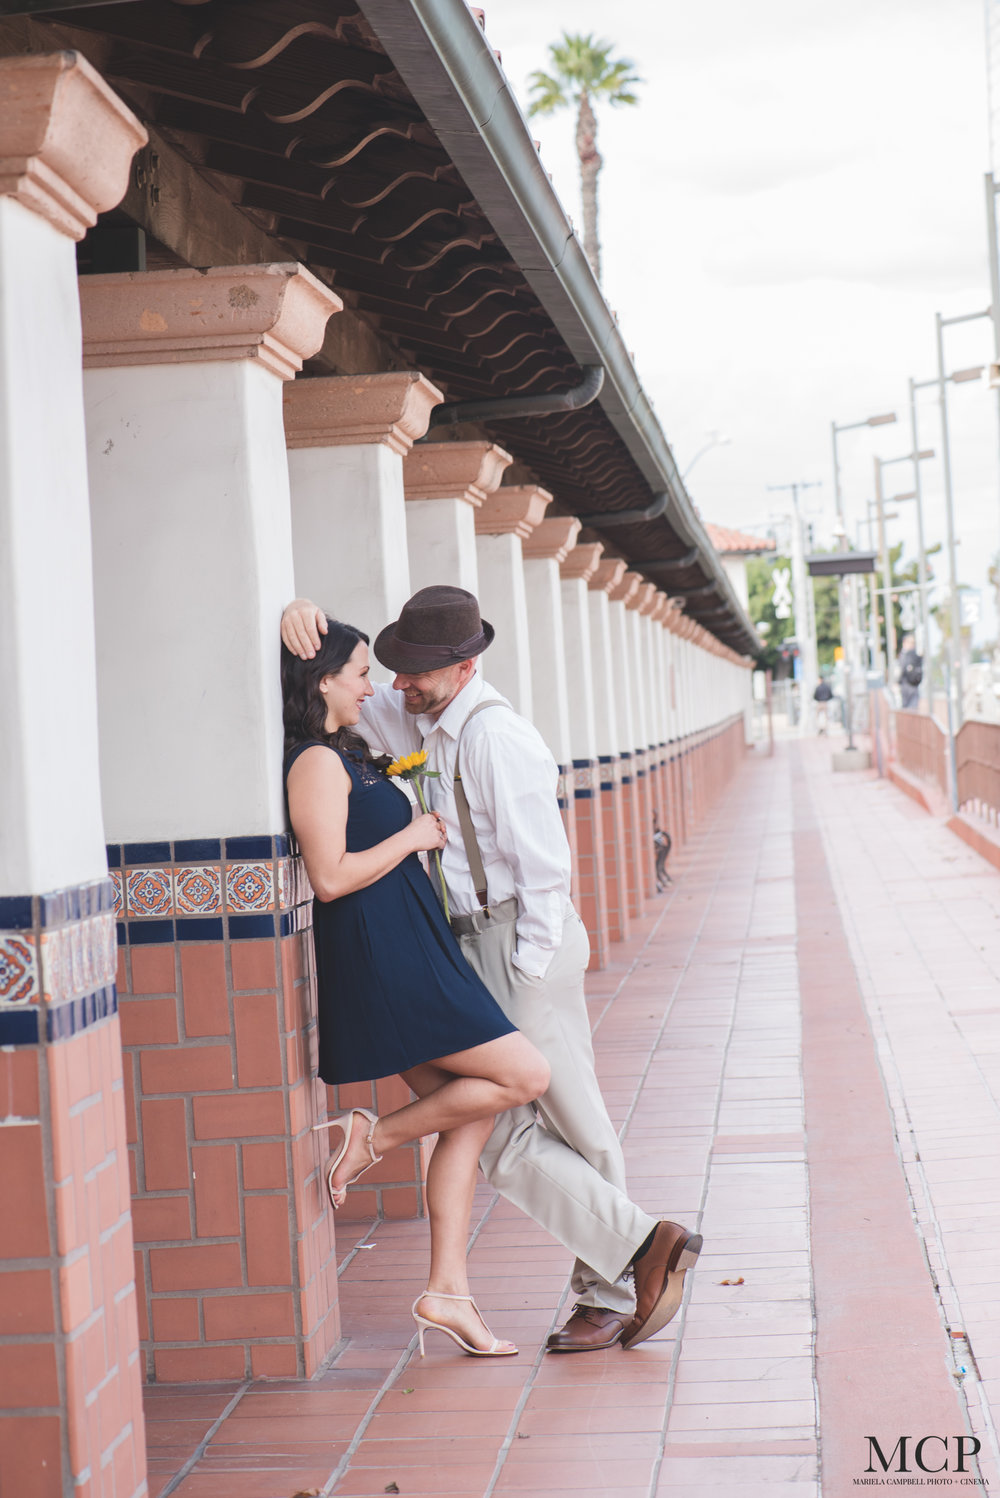 Amanda & Travis - Santa Ana Train Station - MCP-163.jpg